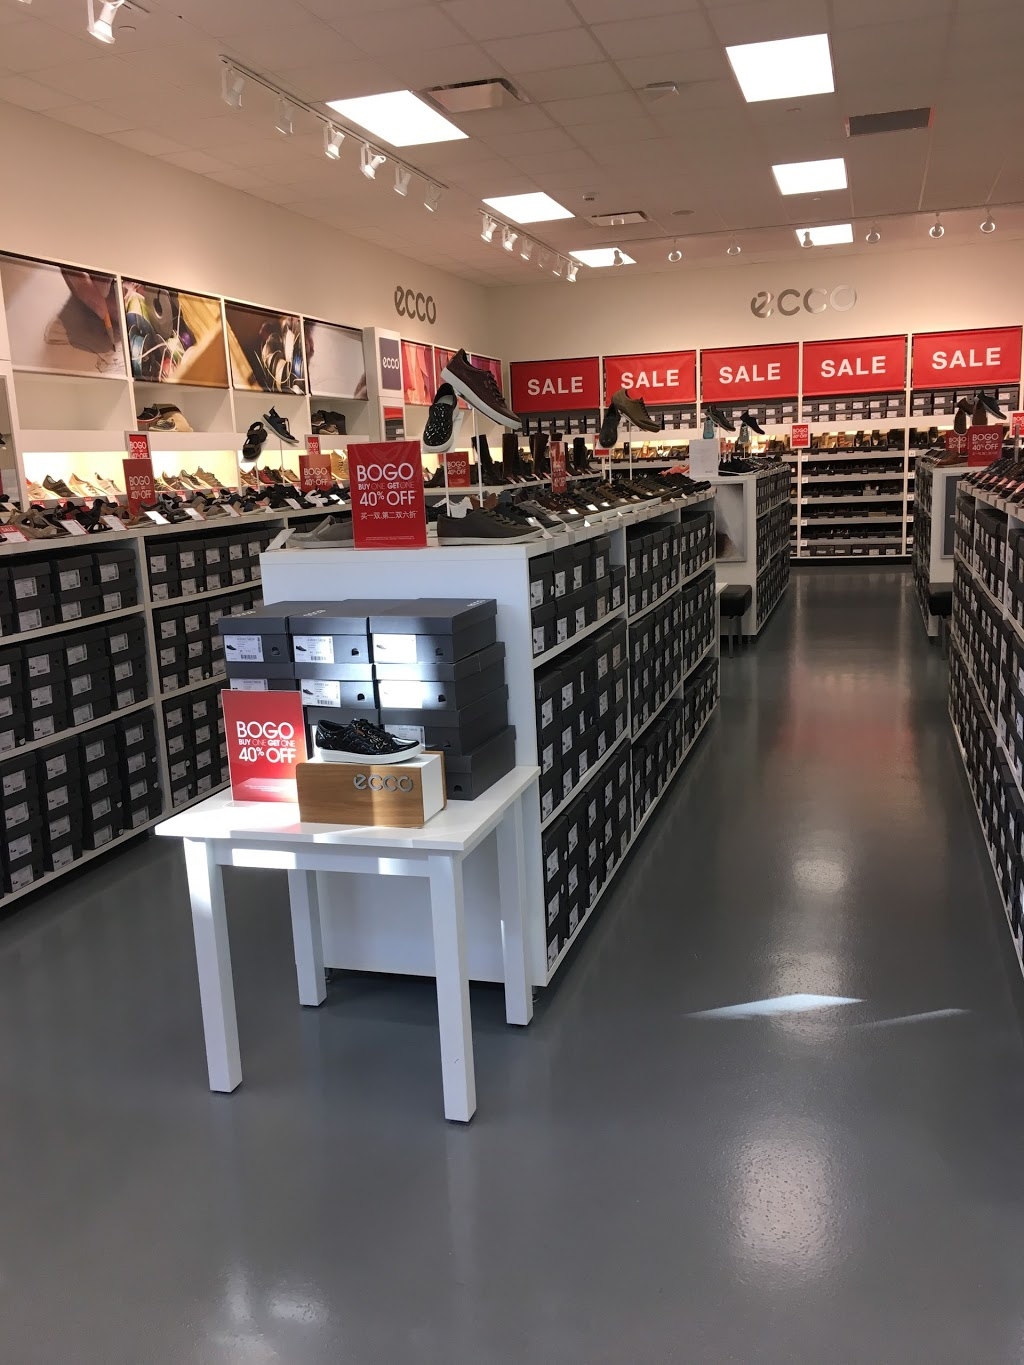 ECCO Outlet - shoe store  | Photo 2 of 7 | Address: 455 Trolley Line Blvd #265, Mashantucket, CT 06338, USA | Phone: (860) 213-5286